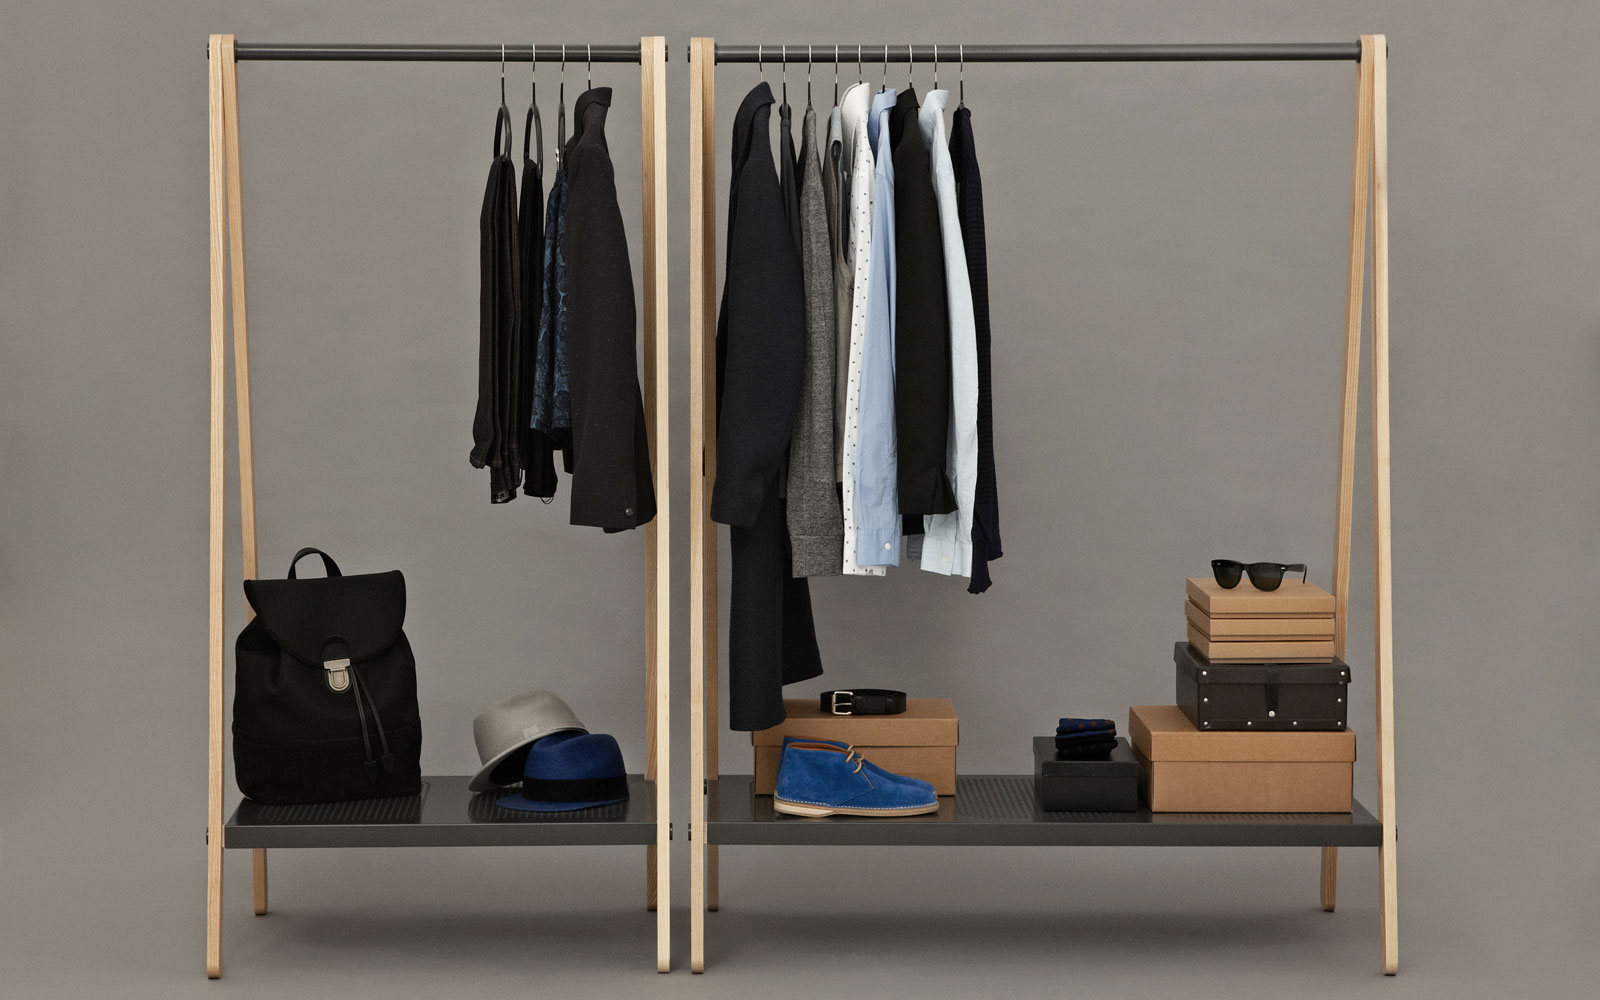 clothing rack with shoes, shirts, and sunglasses in a plain room